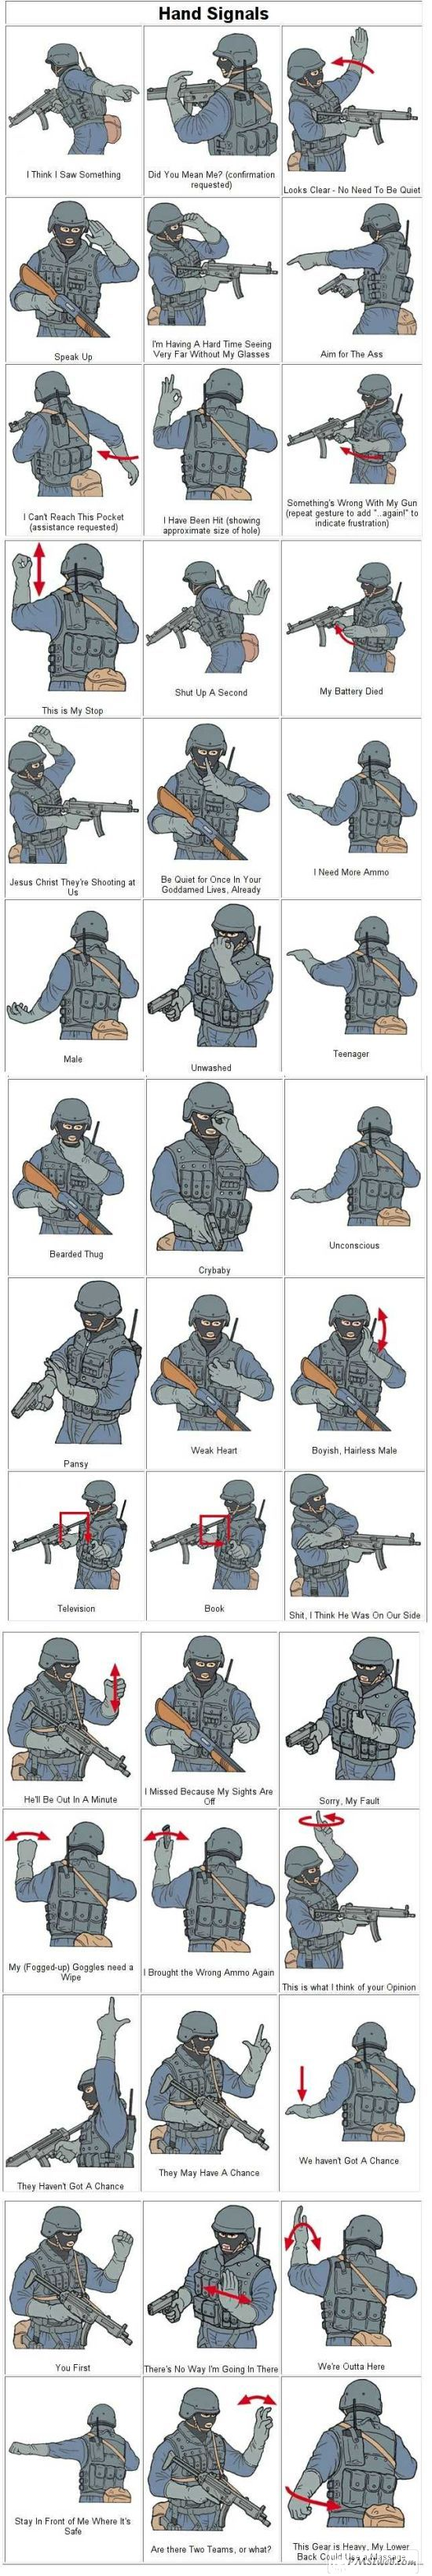 soldier signs humor